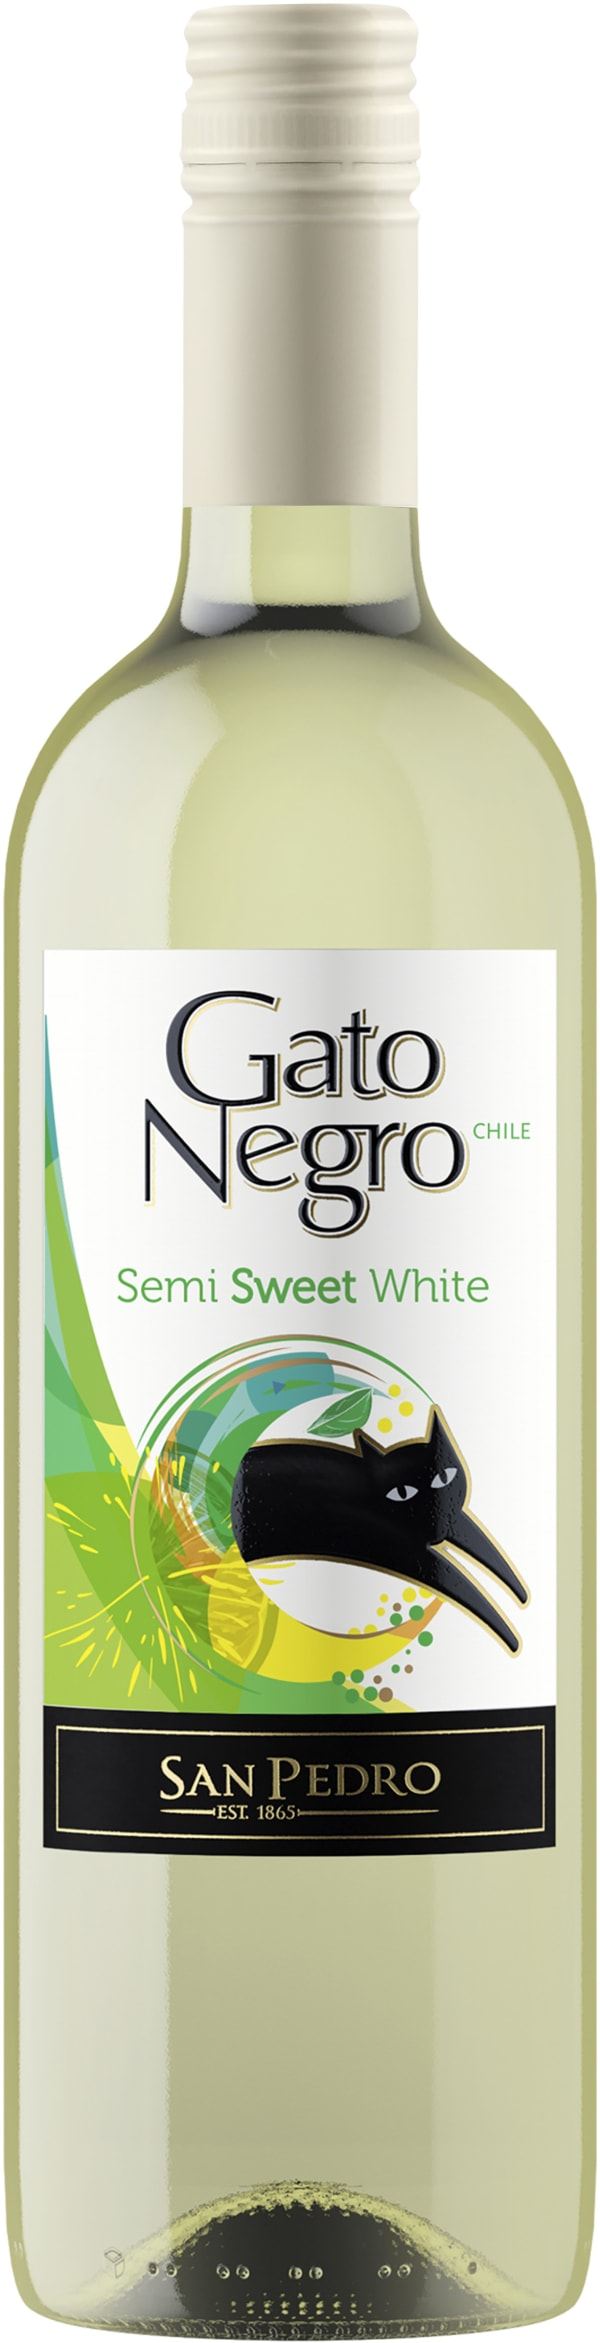 Gato Negro Semi Sweet White 2018